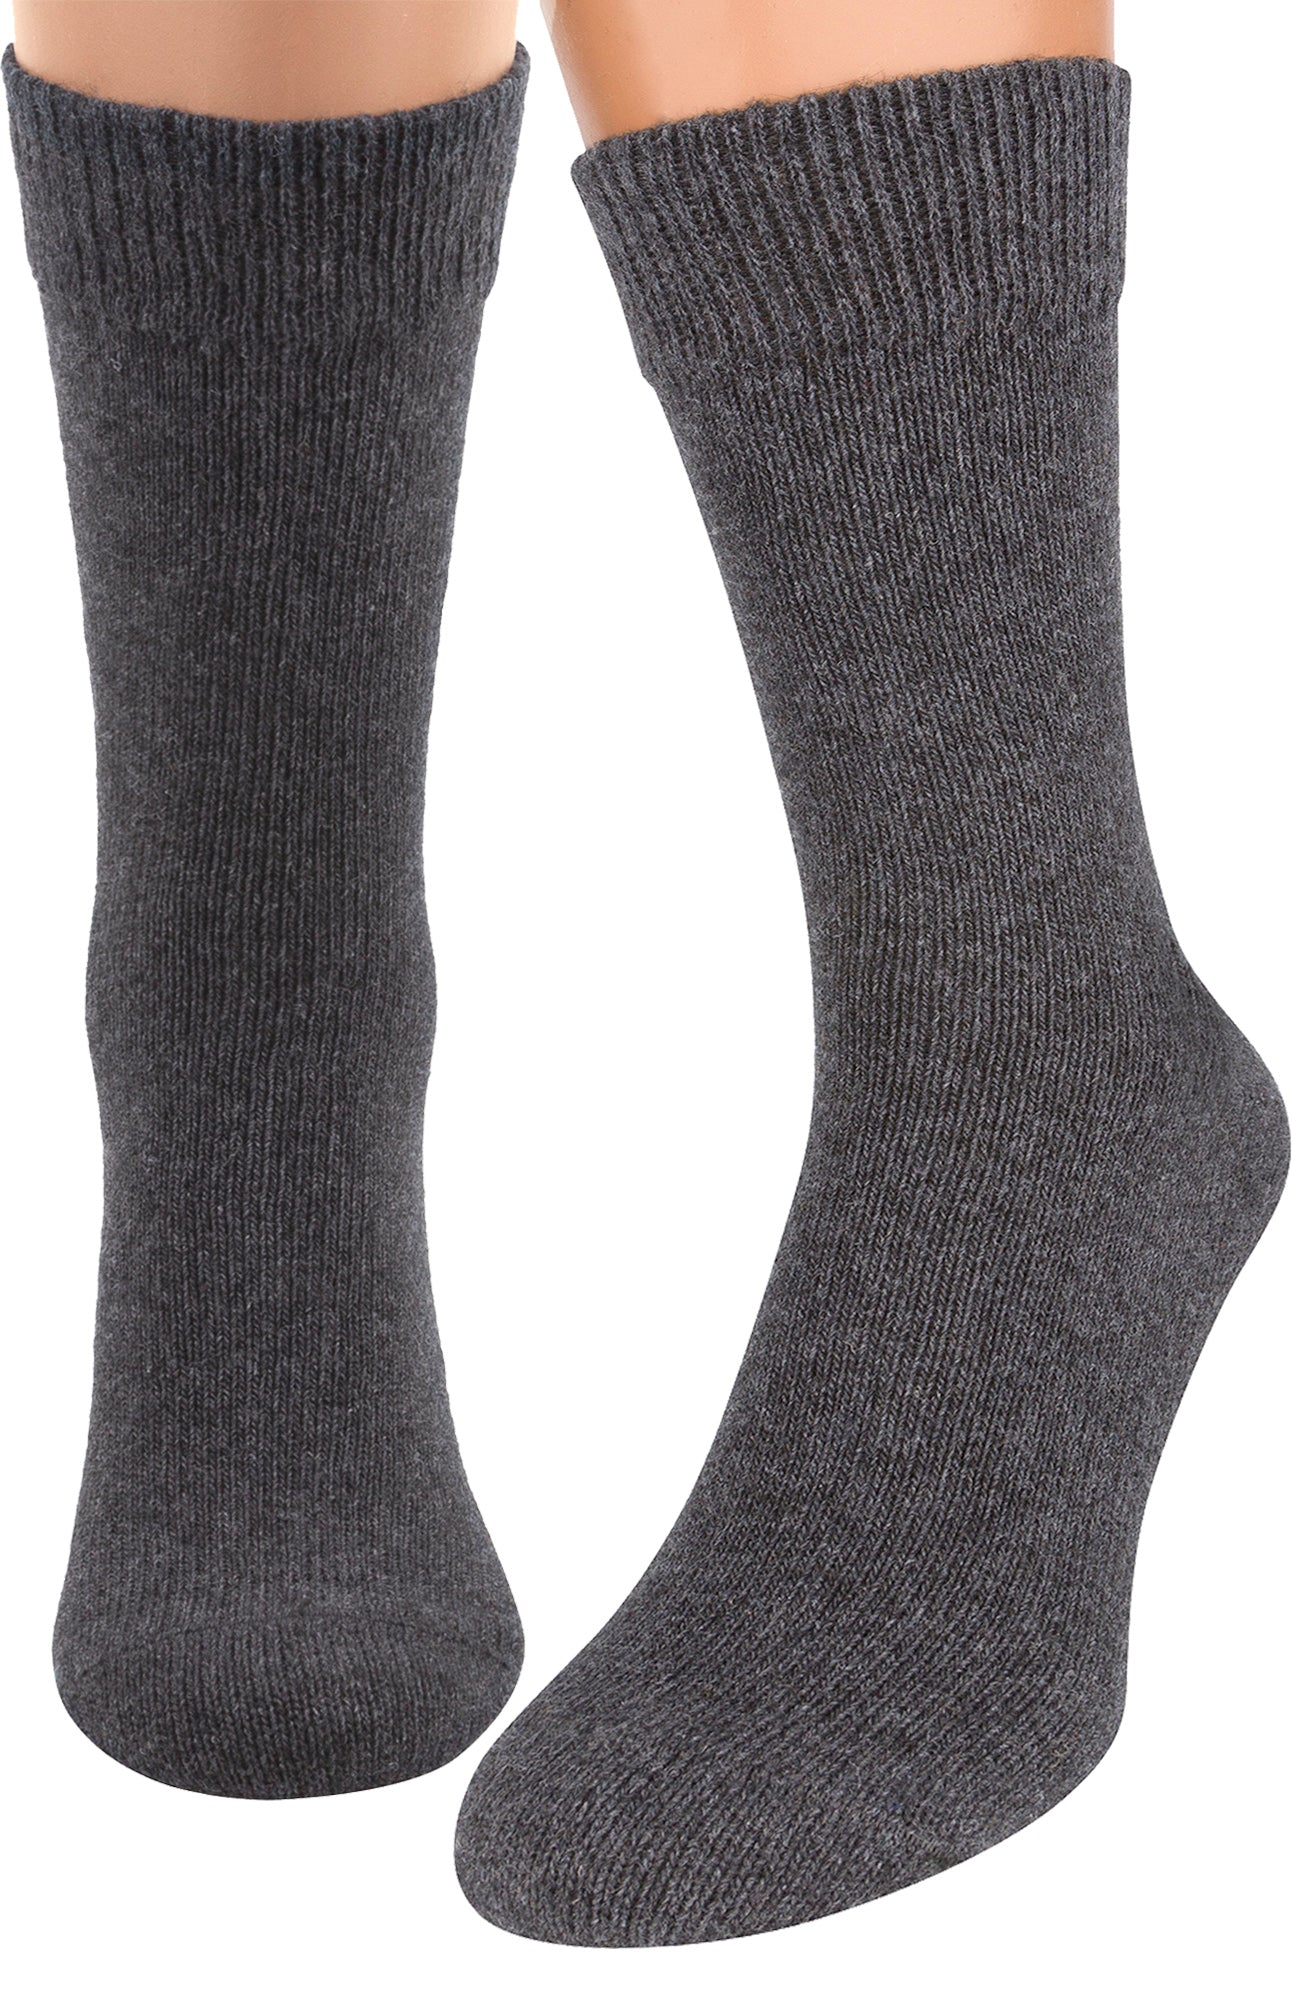 Air Wool Socks – Merino Wool Organic Cotton Heated Yarn Dress Sock, 2 packs, Grey